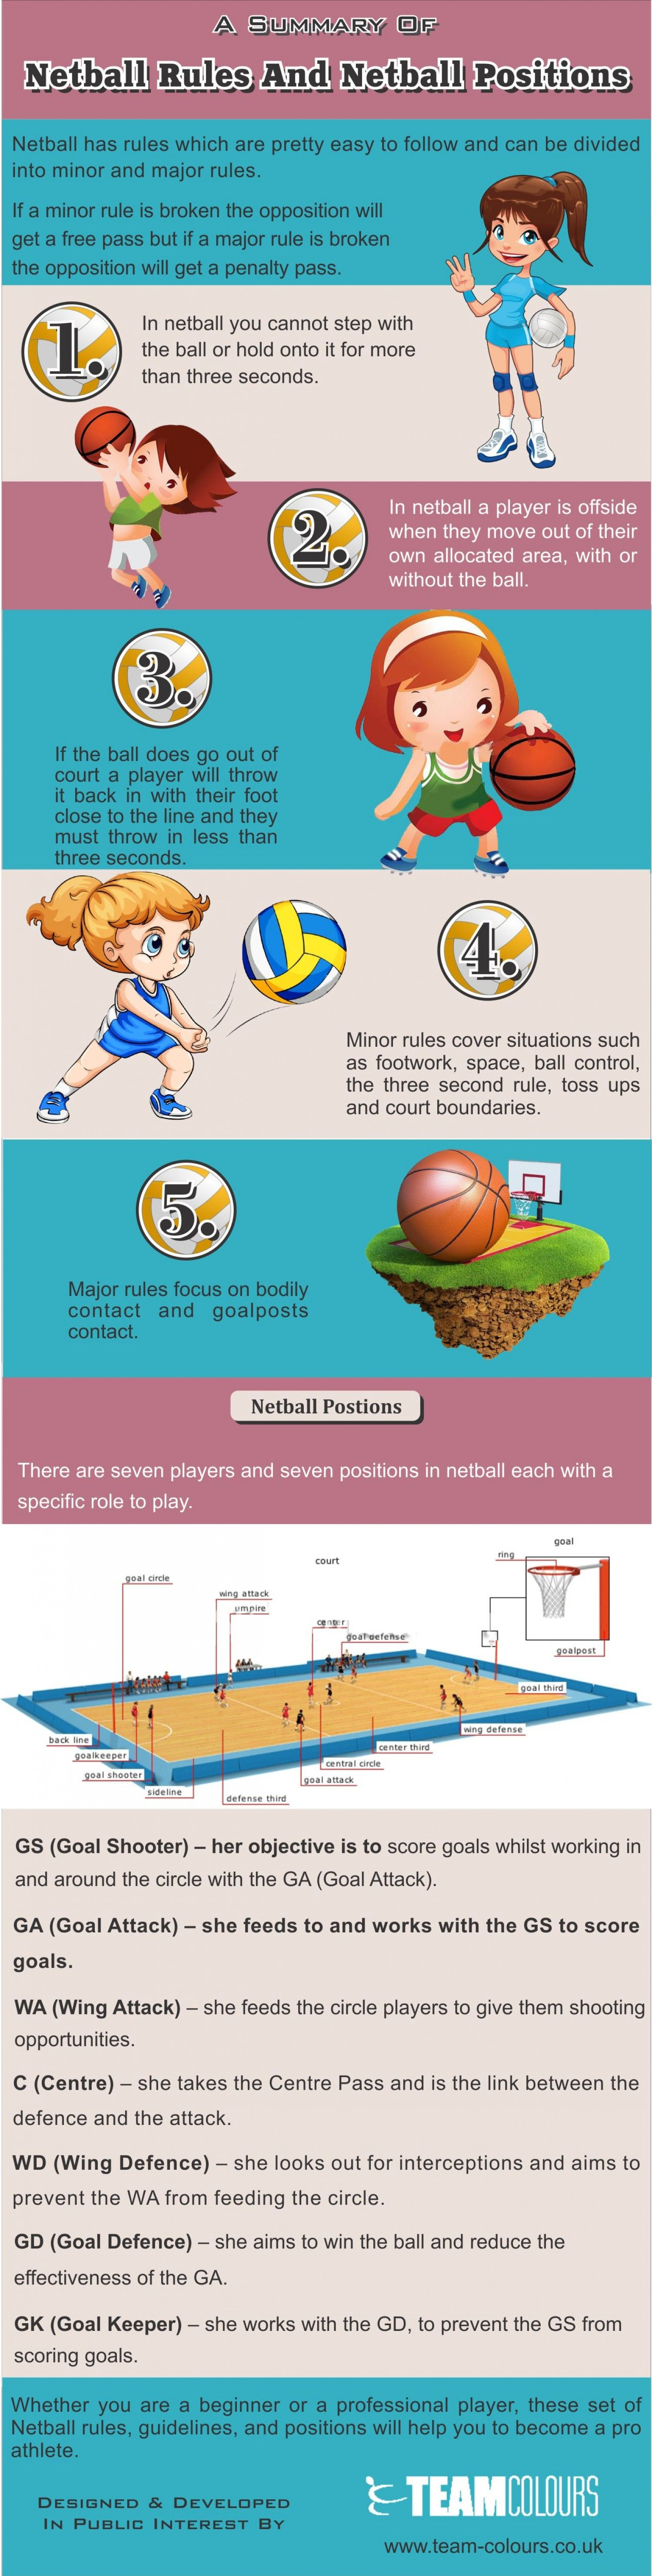 A Summary Of Netball Rules And Netball Positions Infographic Netball How To Play Netball Netball Coach